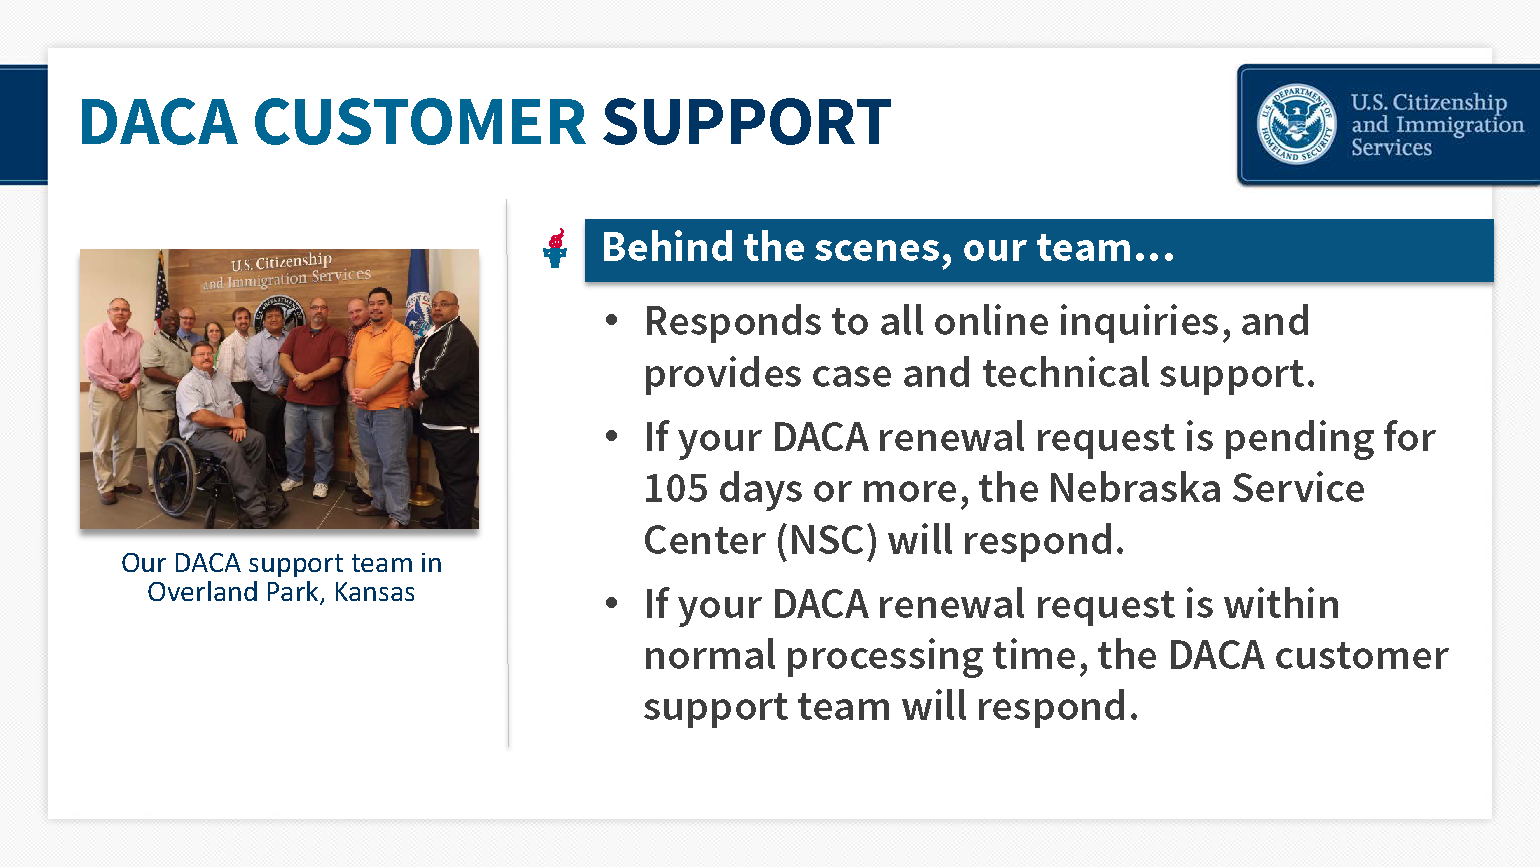 Case_Inquiry_Process_for_DACA_Renewals_0_Page_04.png